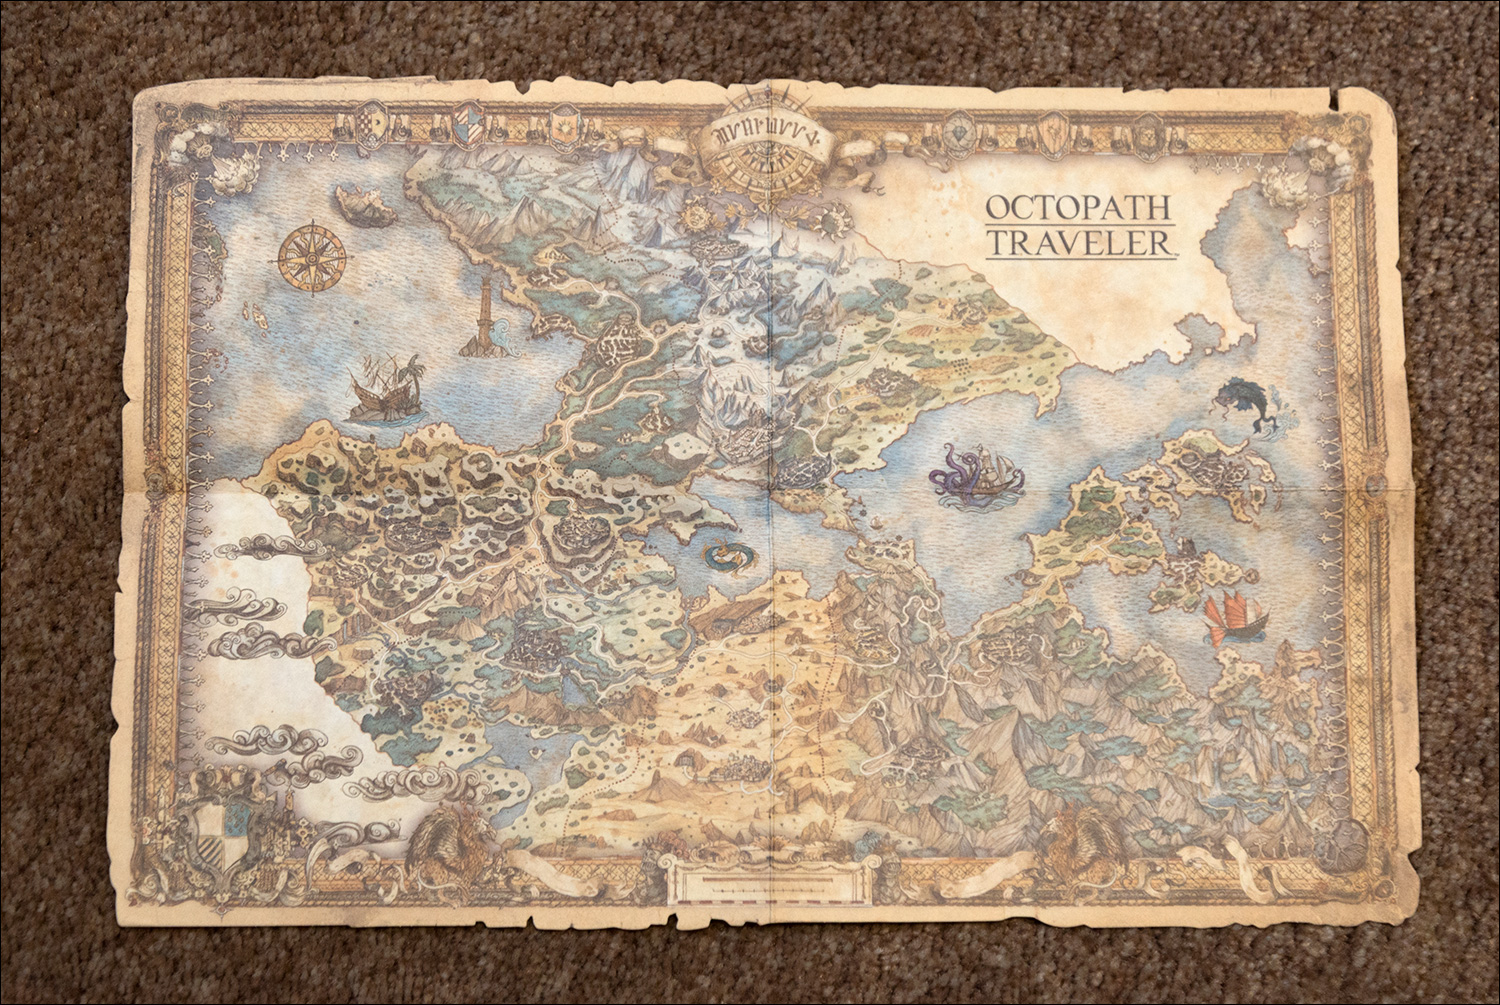 Octopath Traveler Traveler S Compendium Edition Video Game Shelf